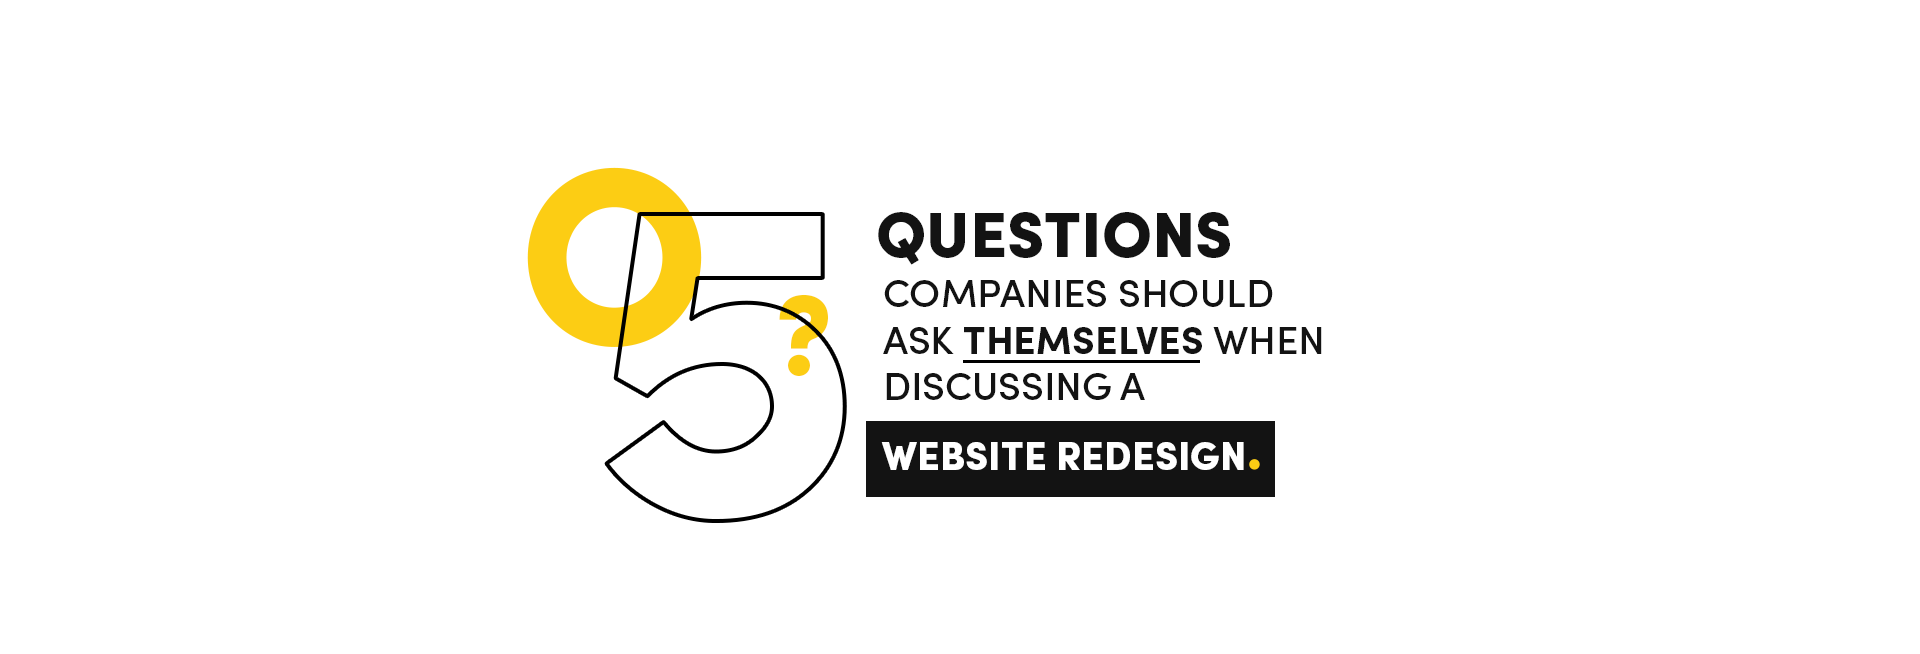 5 Questions Companies Should Ask Themselves When Discussing a Website Redesign